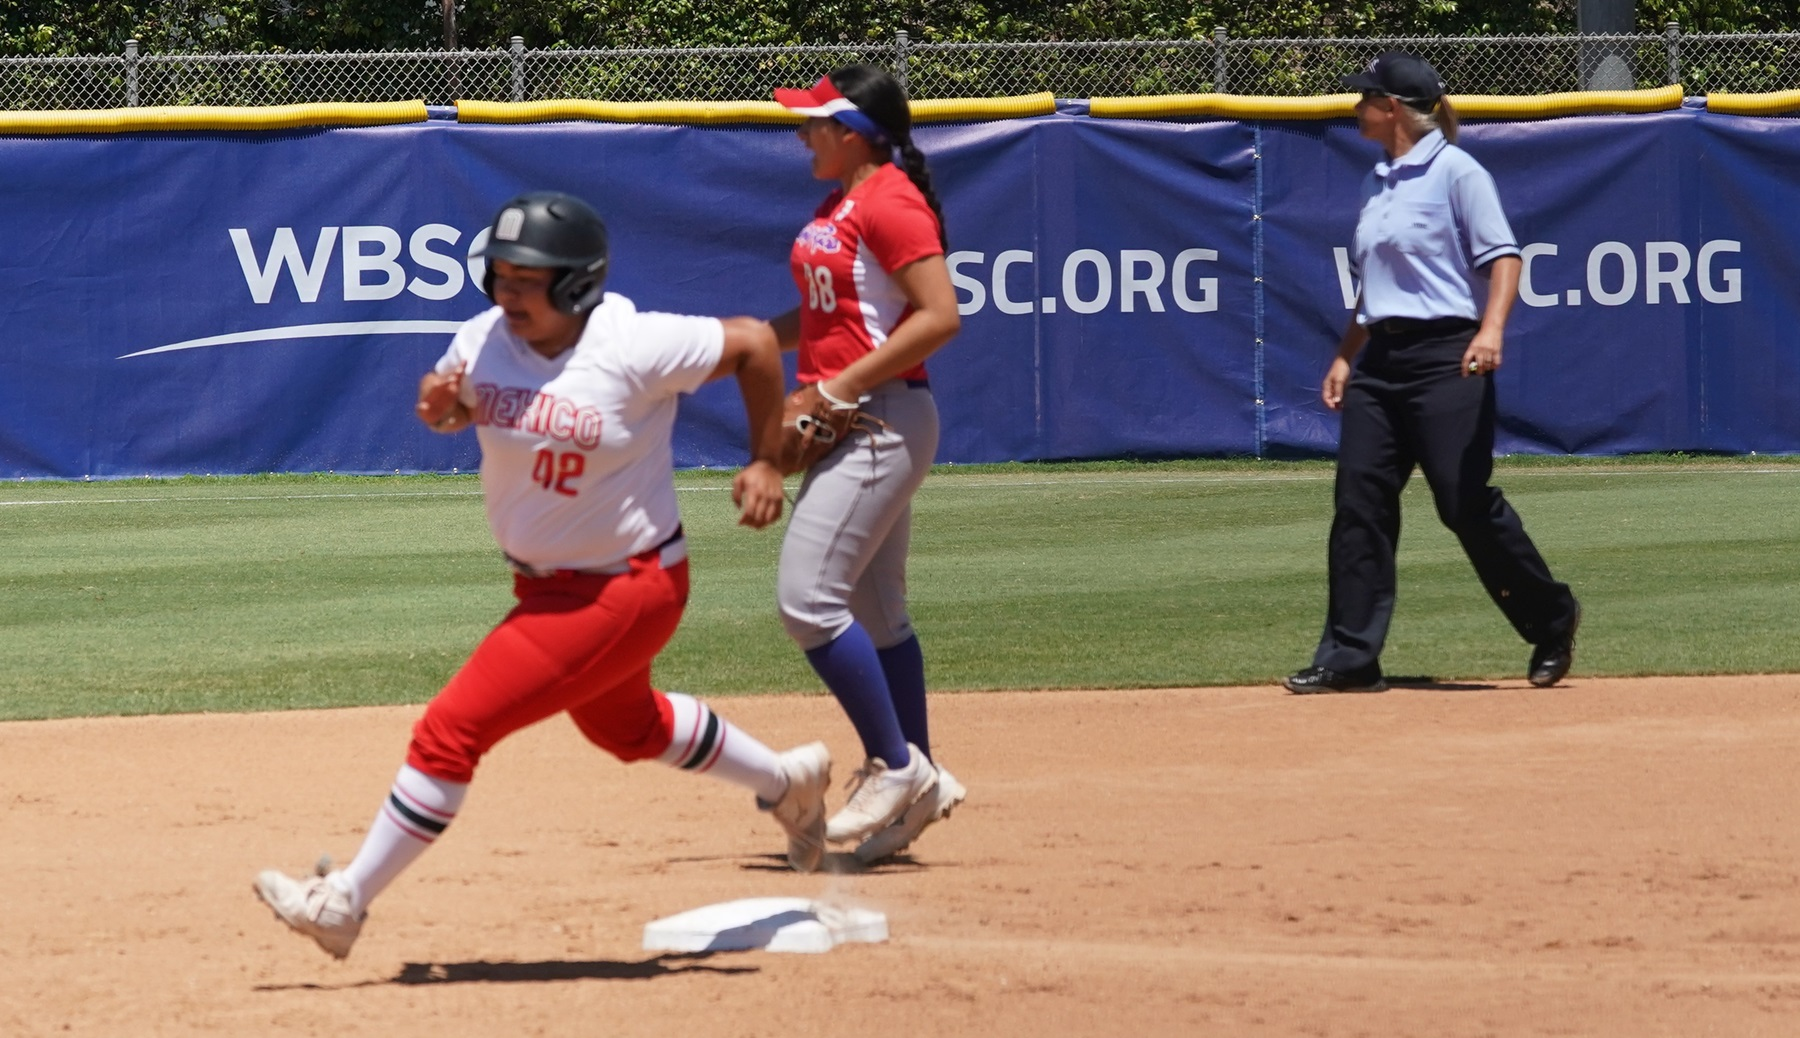 Once Mexico had the lead, cound not extend it. Desiree Hernandez tried to score from first on a double